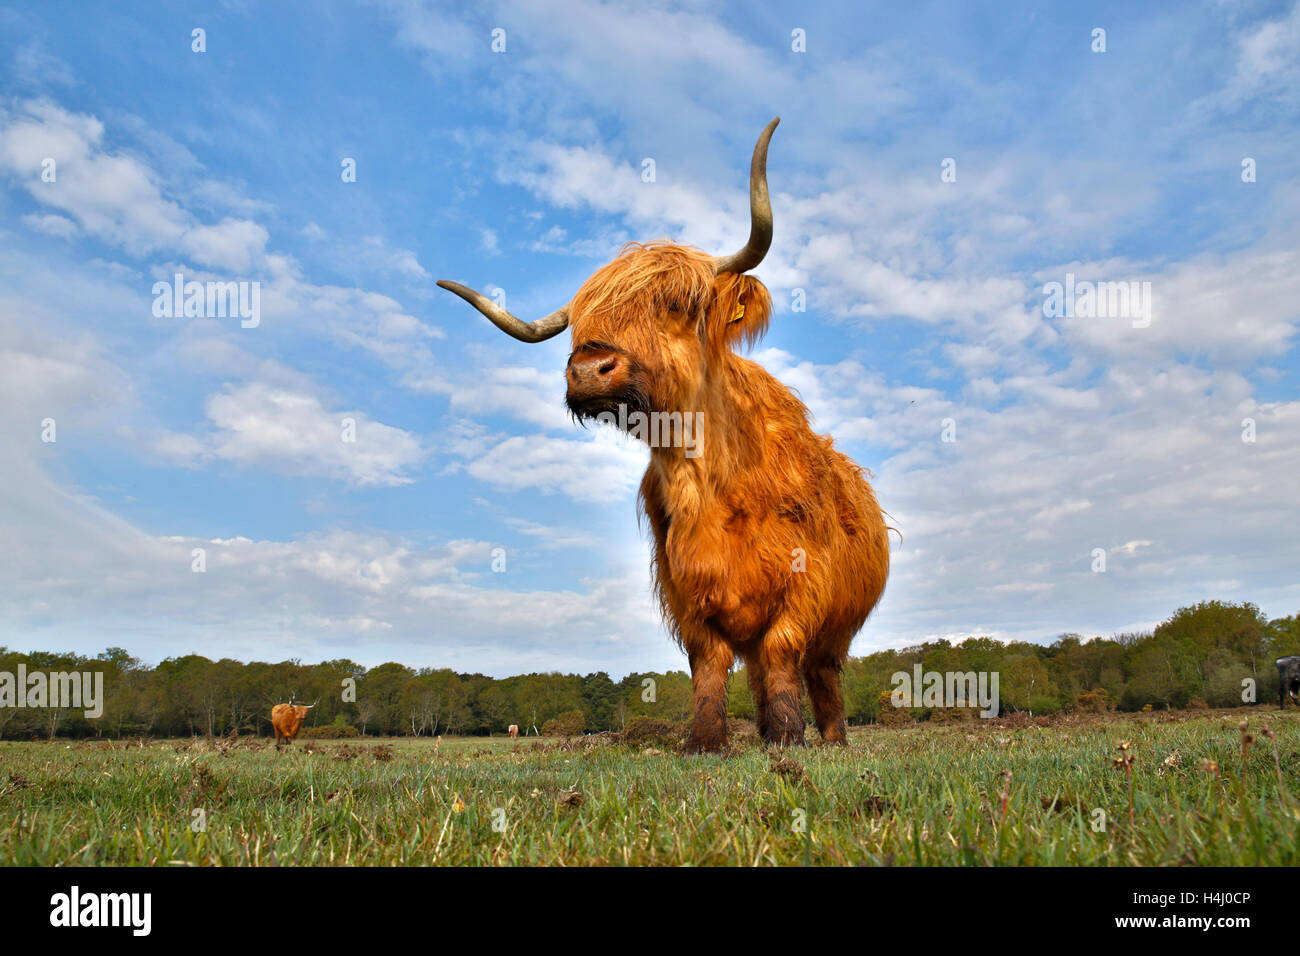 Vache Highland New Forest, Royaume-Uni Photo Stock